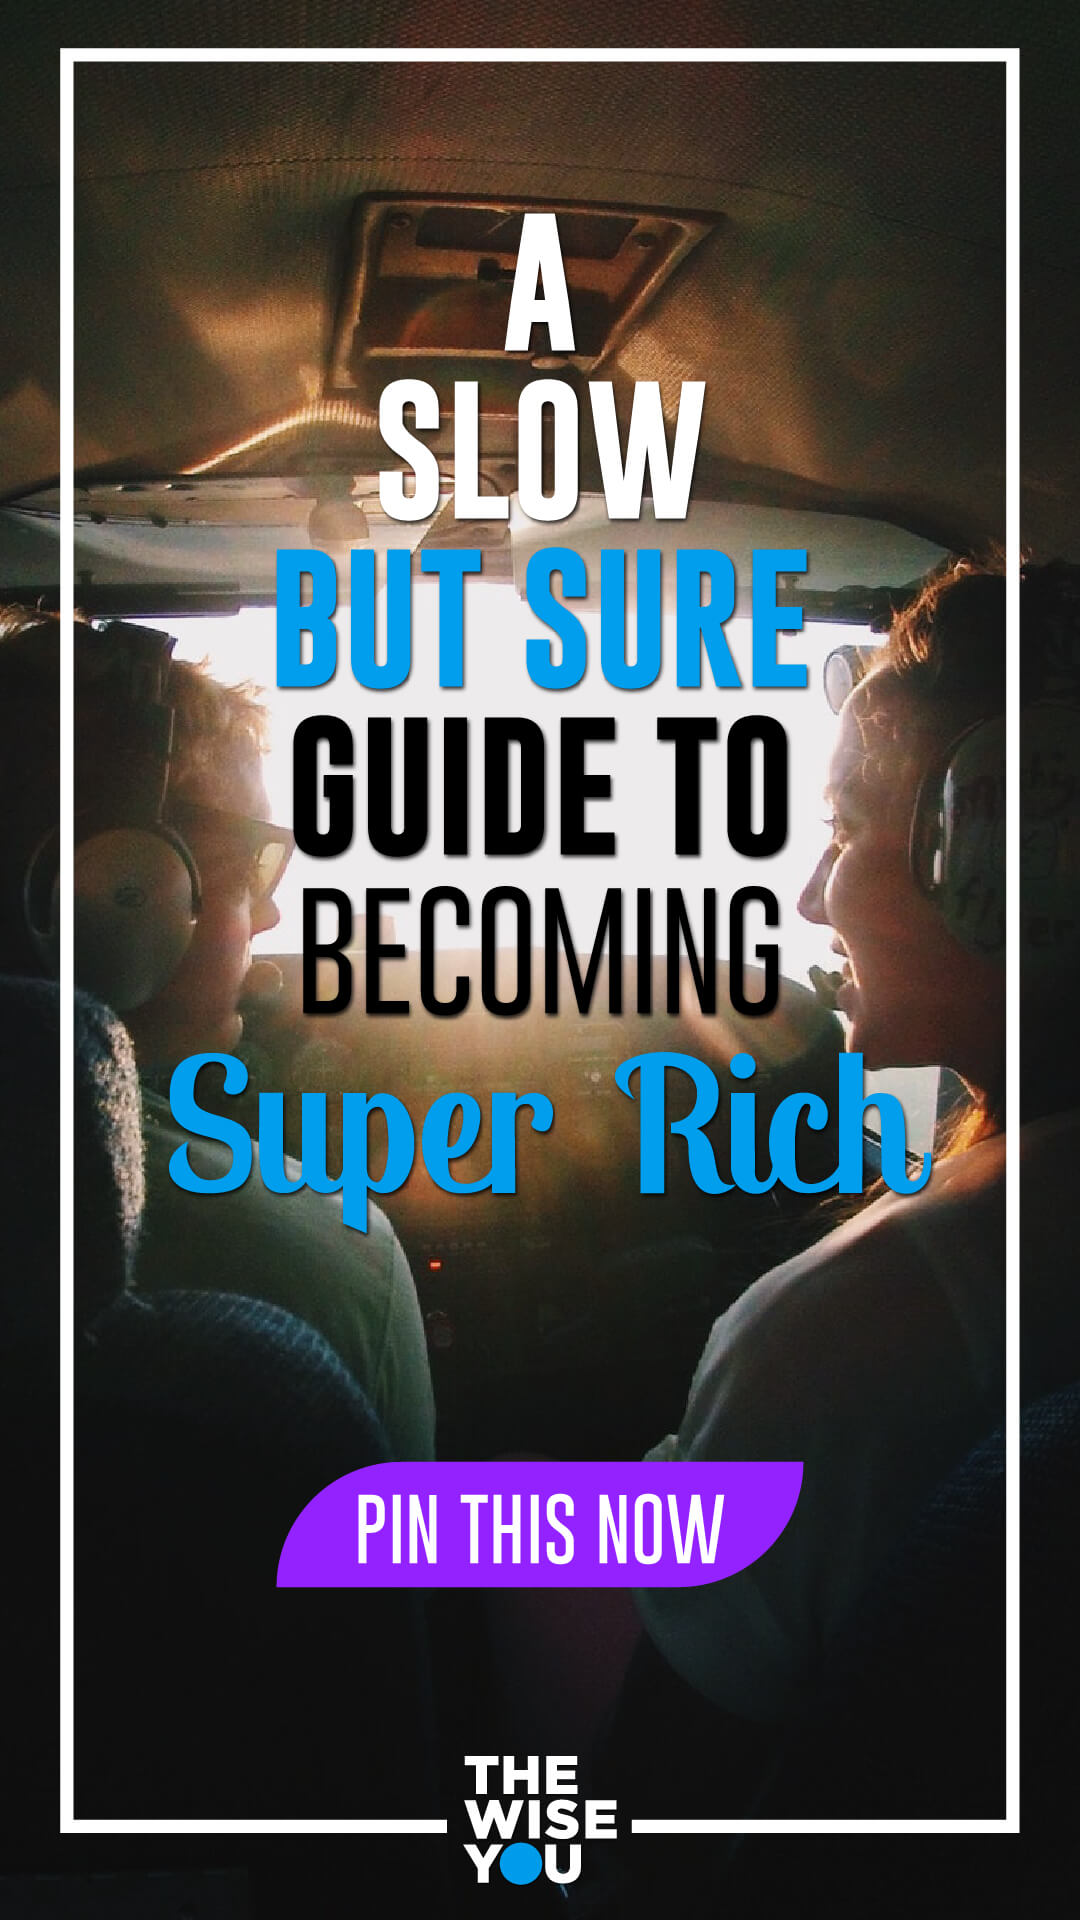 A Slow but Sure Guide to Becoming Super Rich